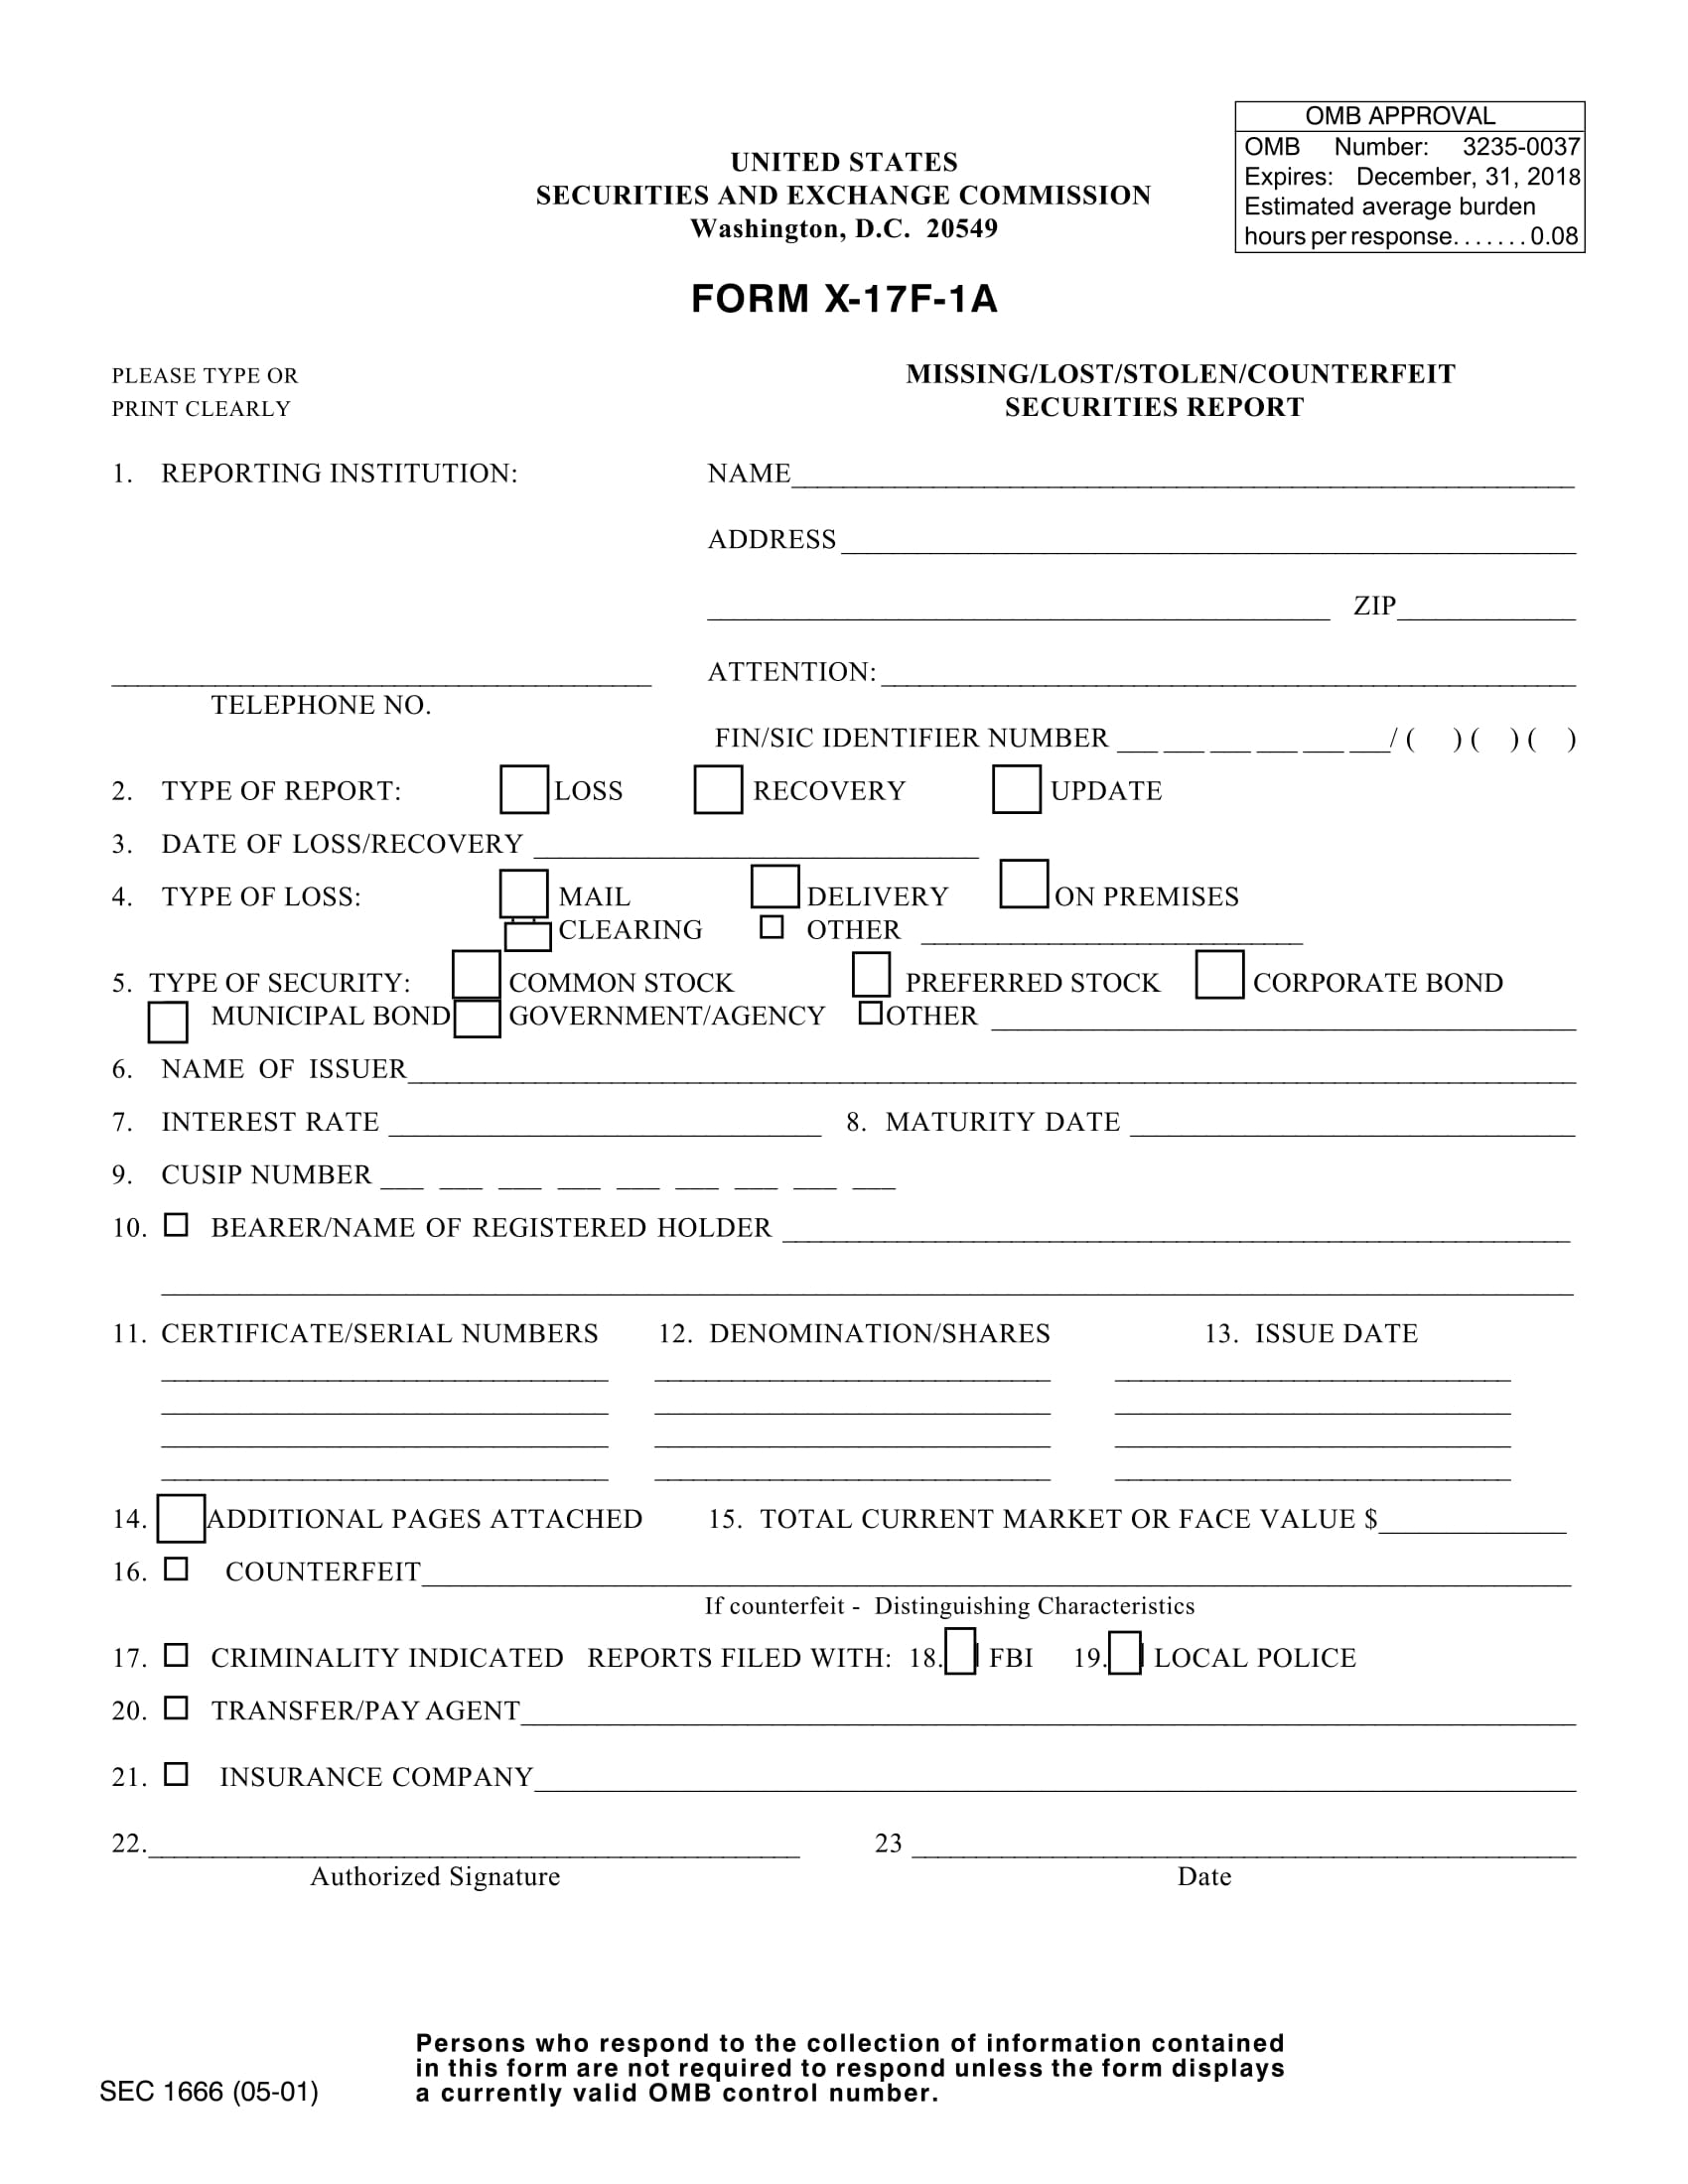 missing securities report form 1